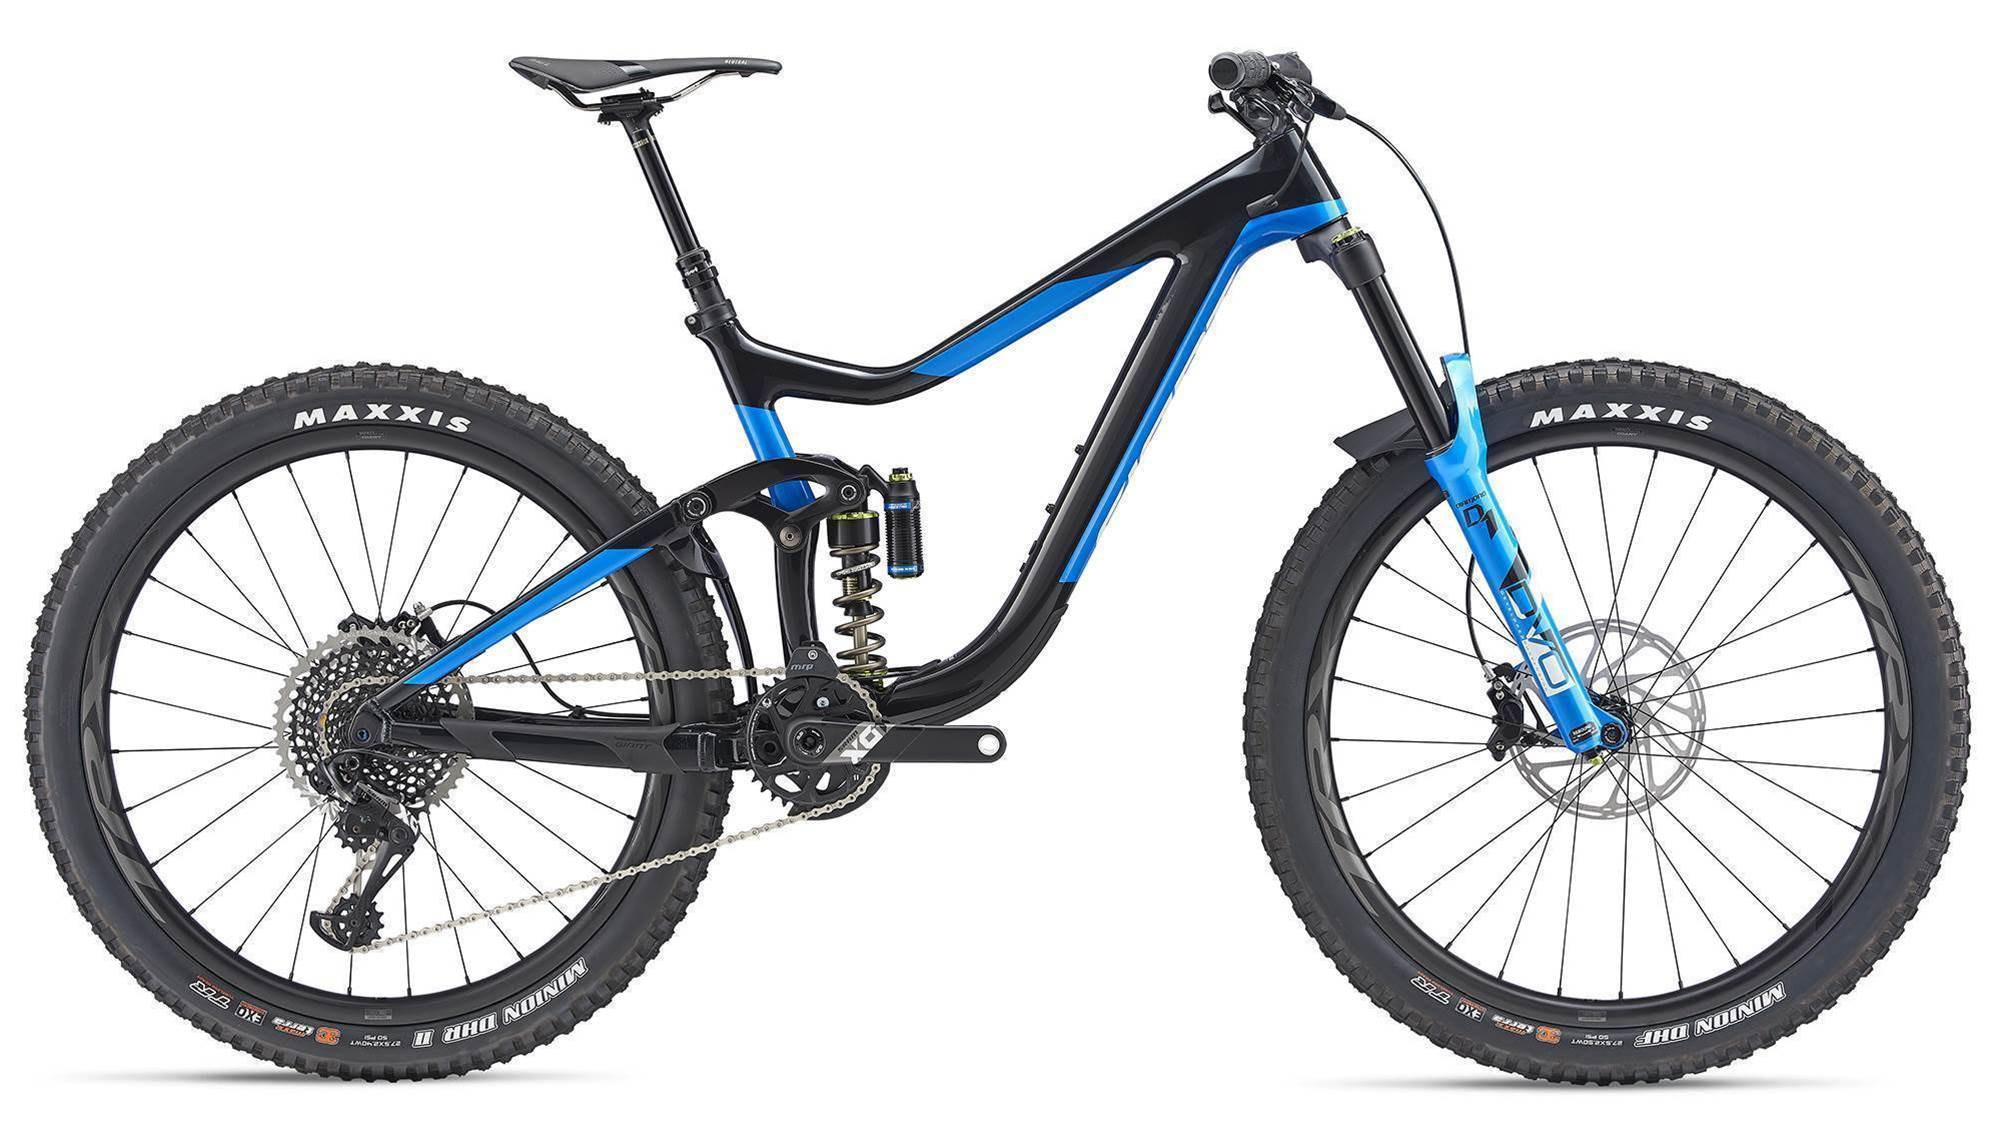 Giant MTB for 2019